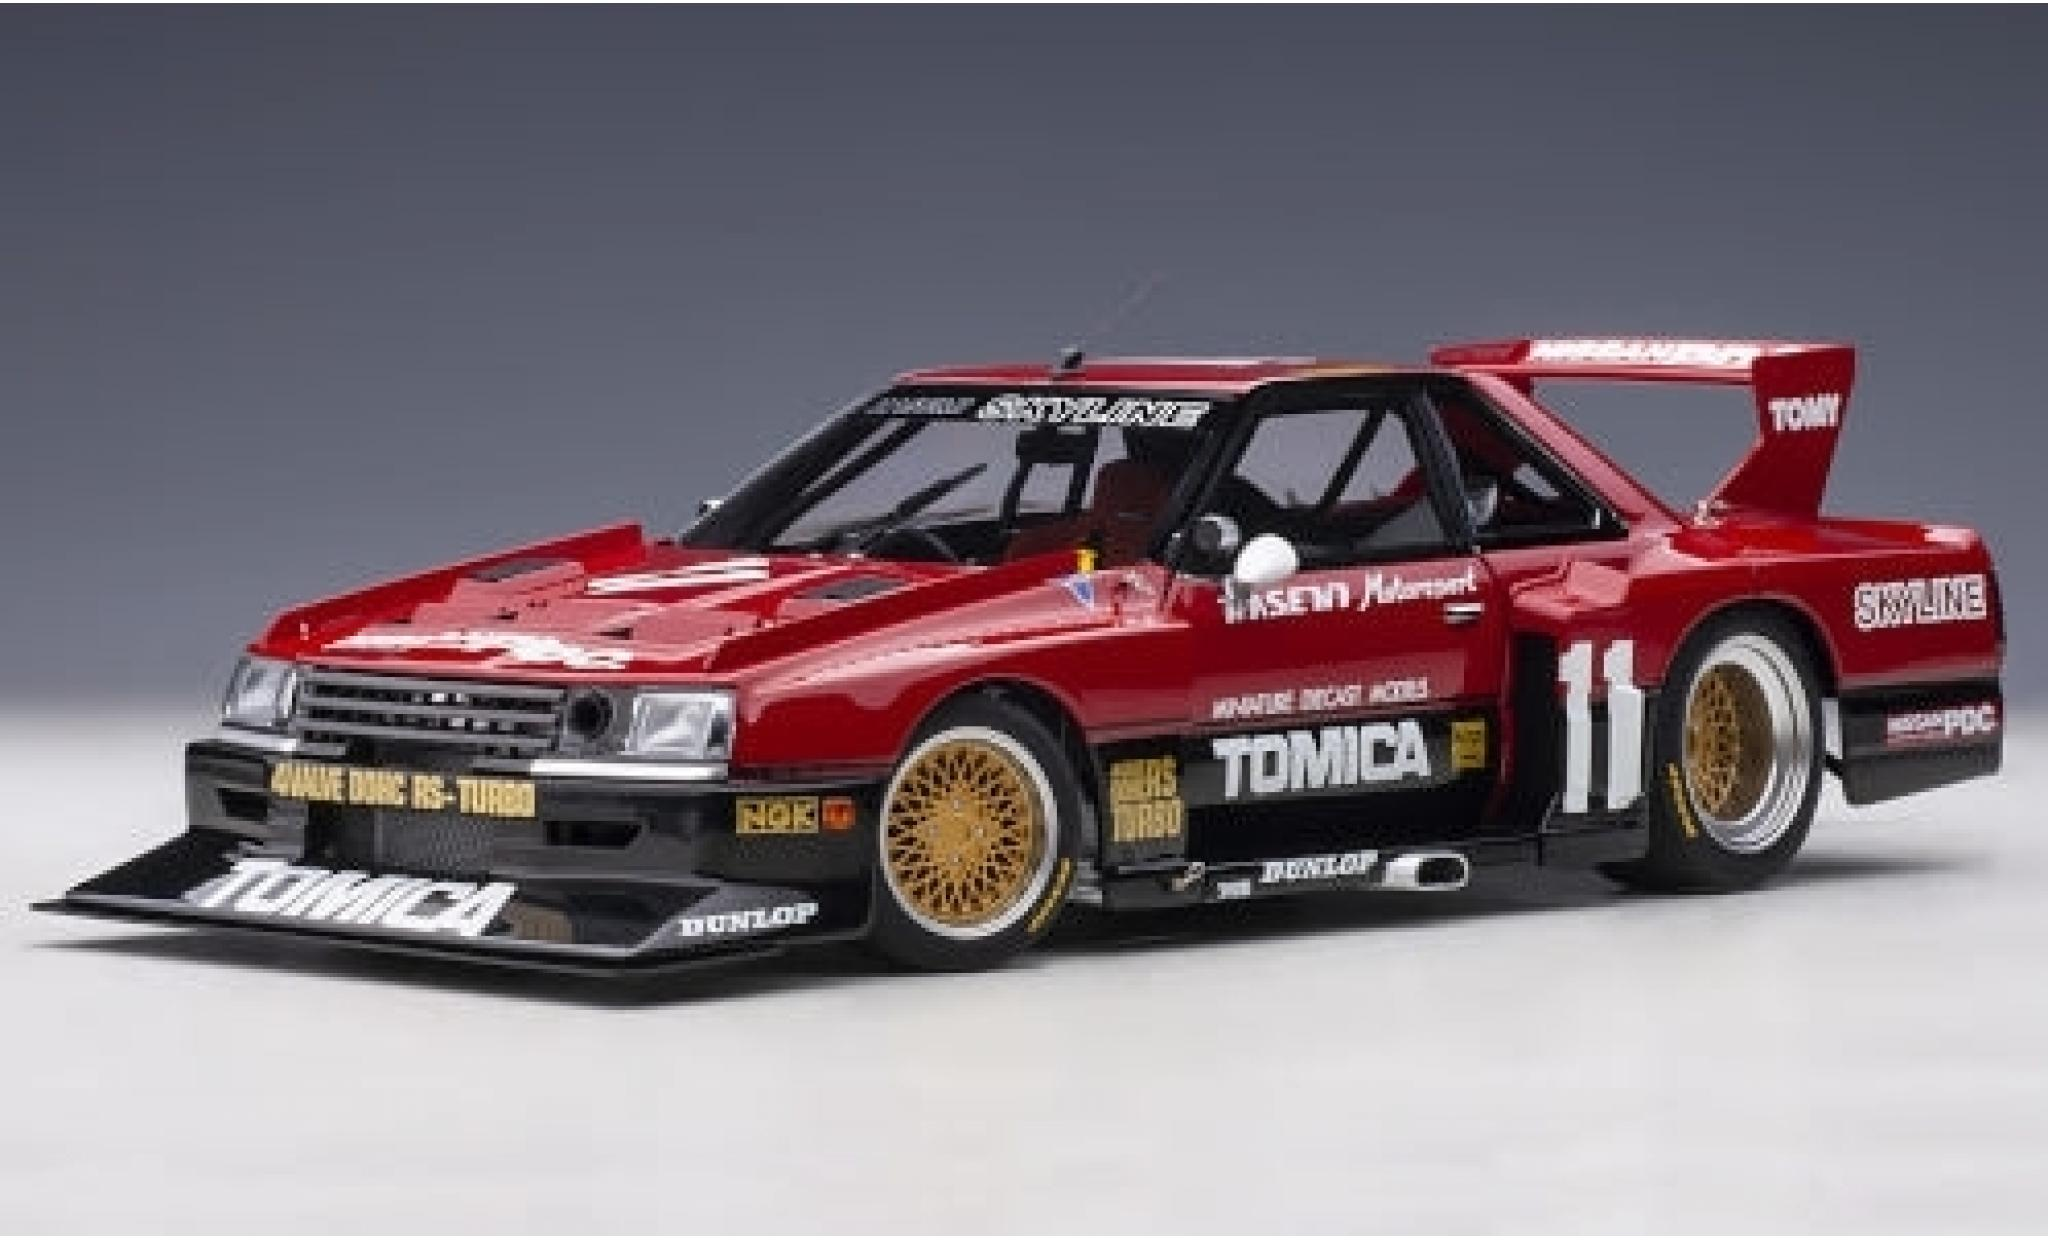 Nissan Skyline 1/18 AUTOart RS Turbo Super Silhouette (DR30) RHD No.11 Hasemi Motorsport Tomica 1982 Early Version